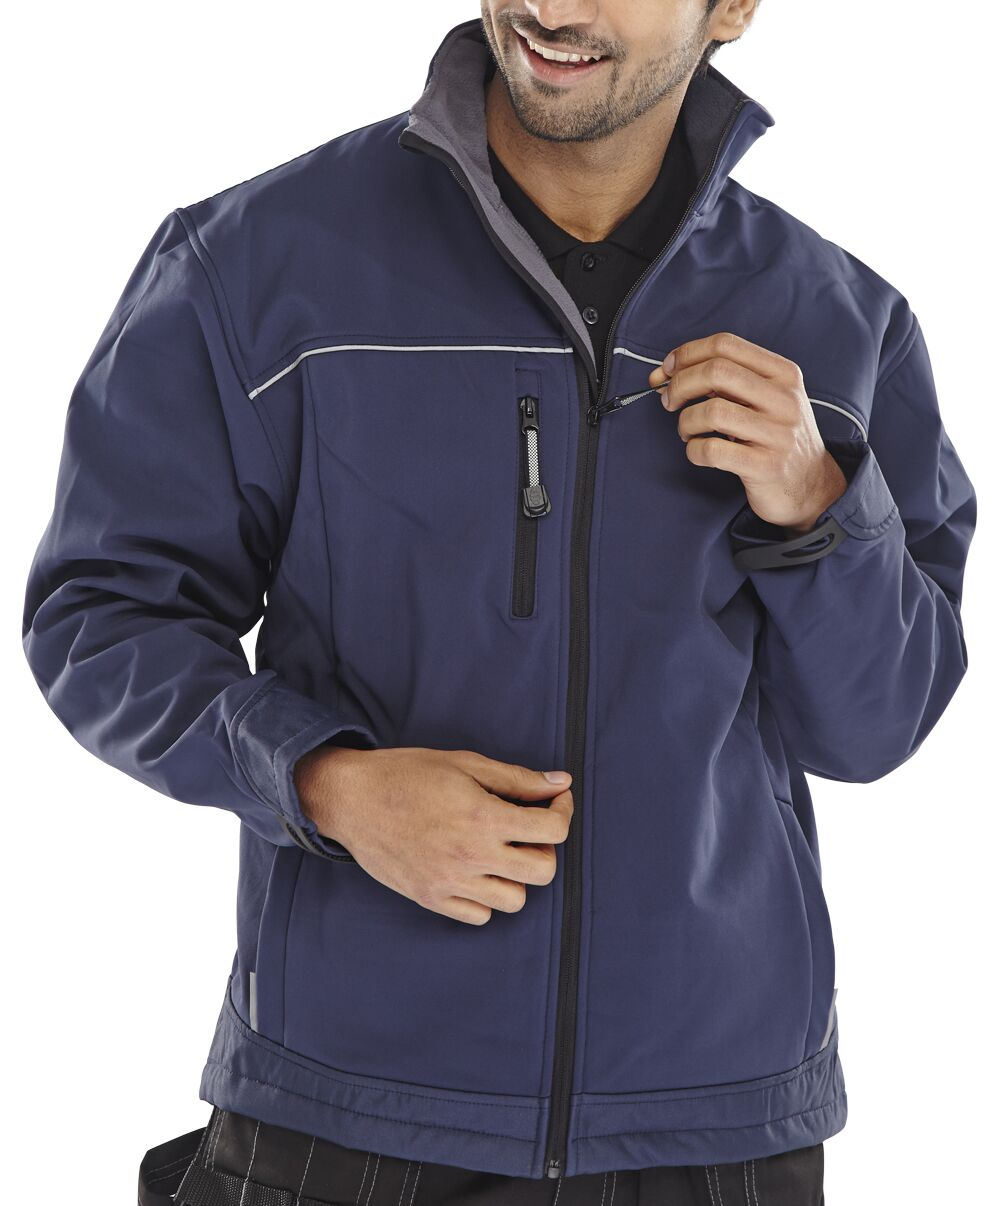 Click Workwear Soft Shell Jacket Water Resistant Windproof Large Navy Ref SSJNL *Approx 3 Day Leadtime*